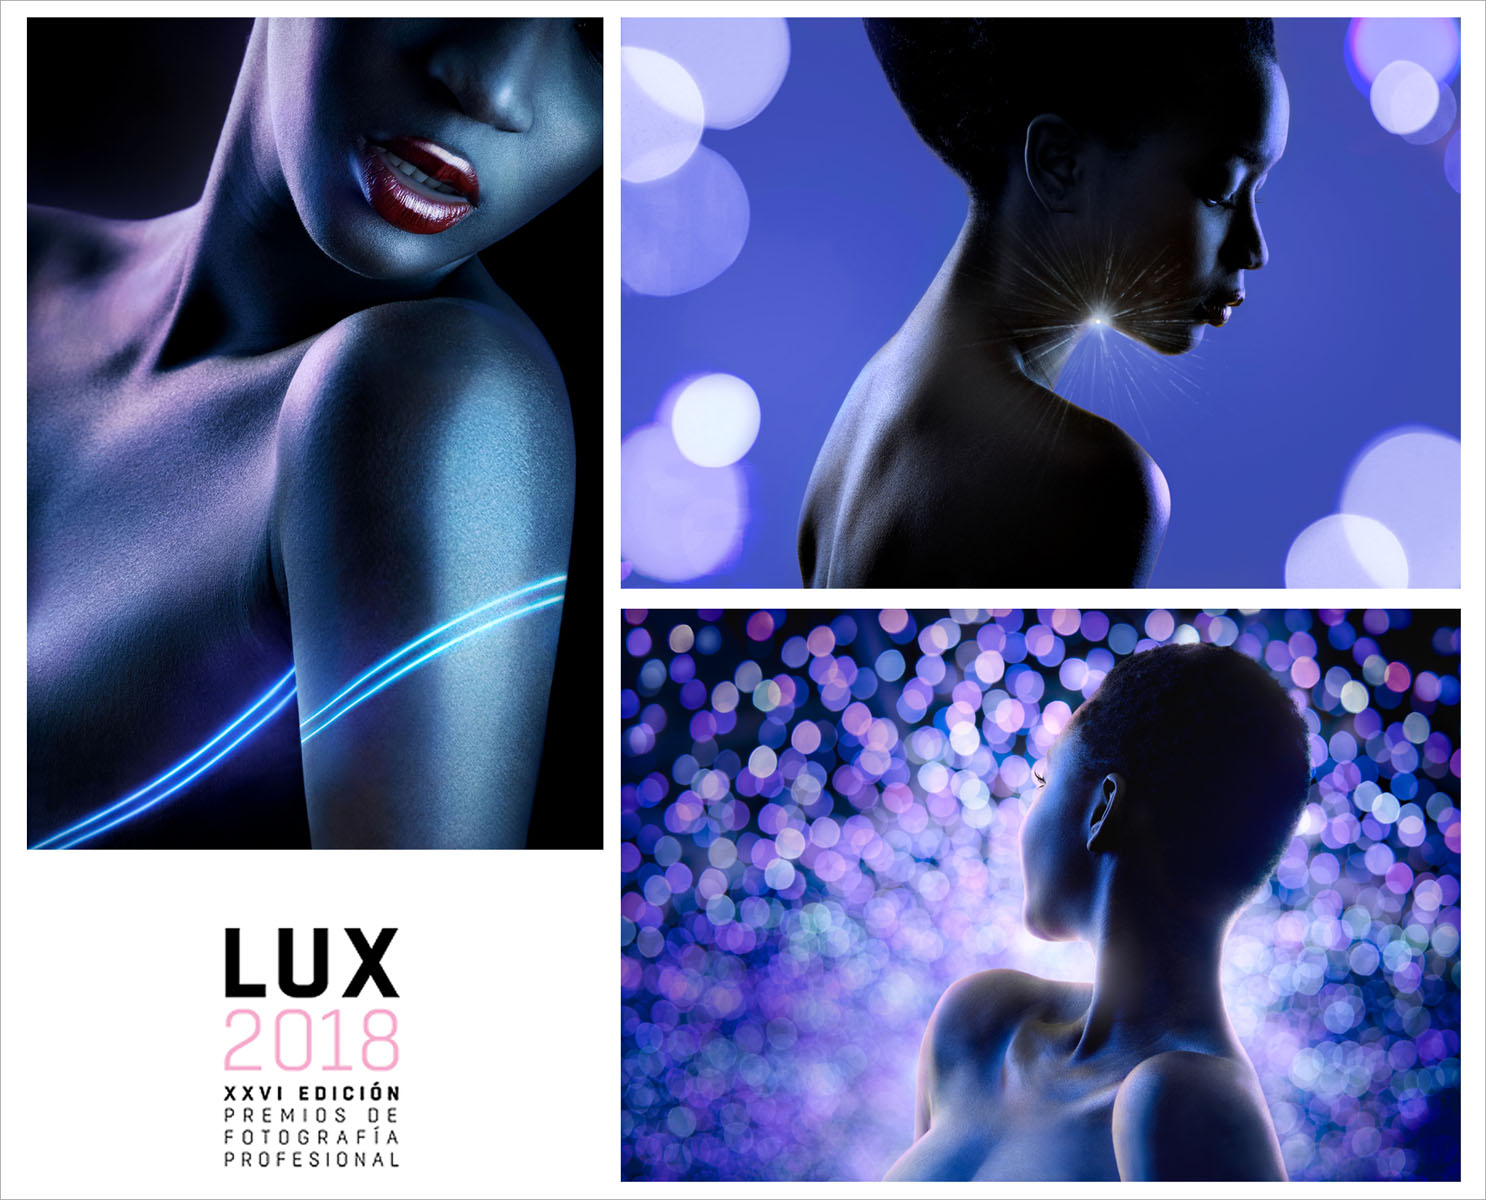 Skin-and-light-ramon vaquero-premio_lux_2018_belleza_moda